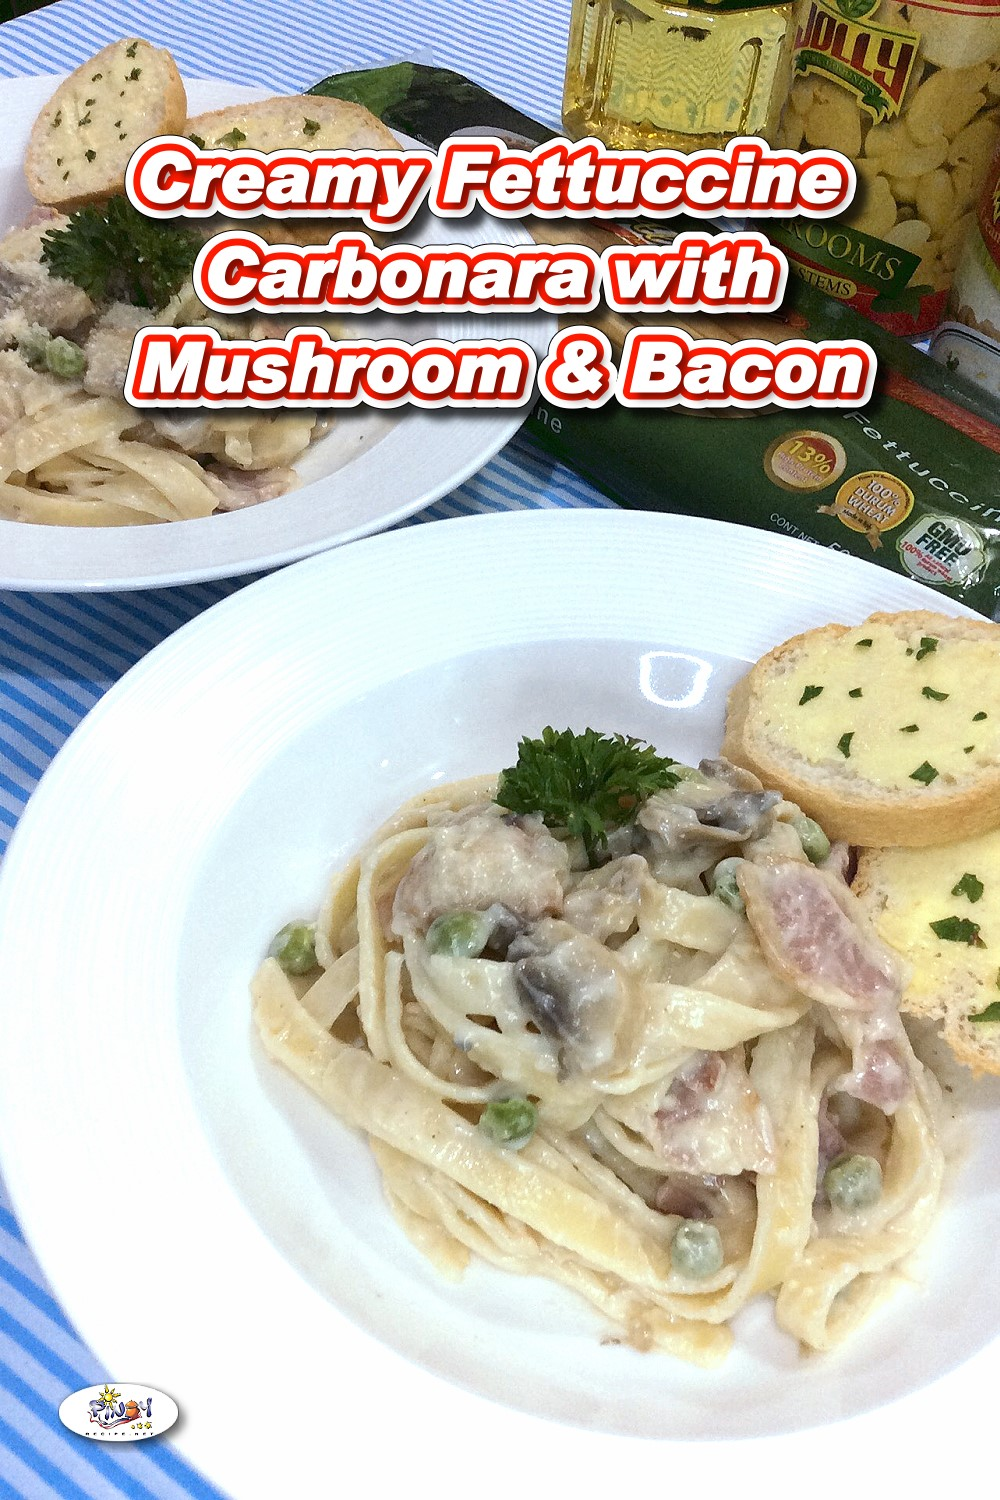 Creamy Fettuccine Carbonara Recipe with Mushroom and Bacon